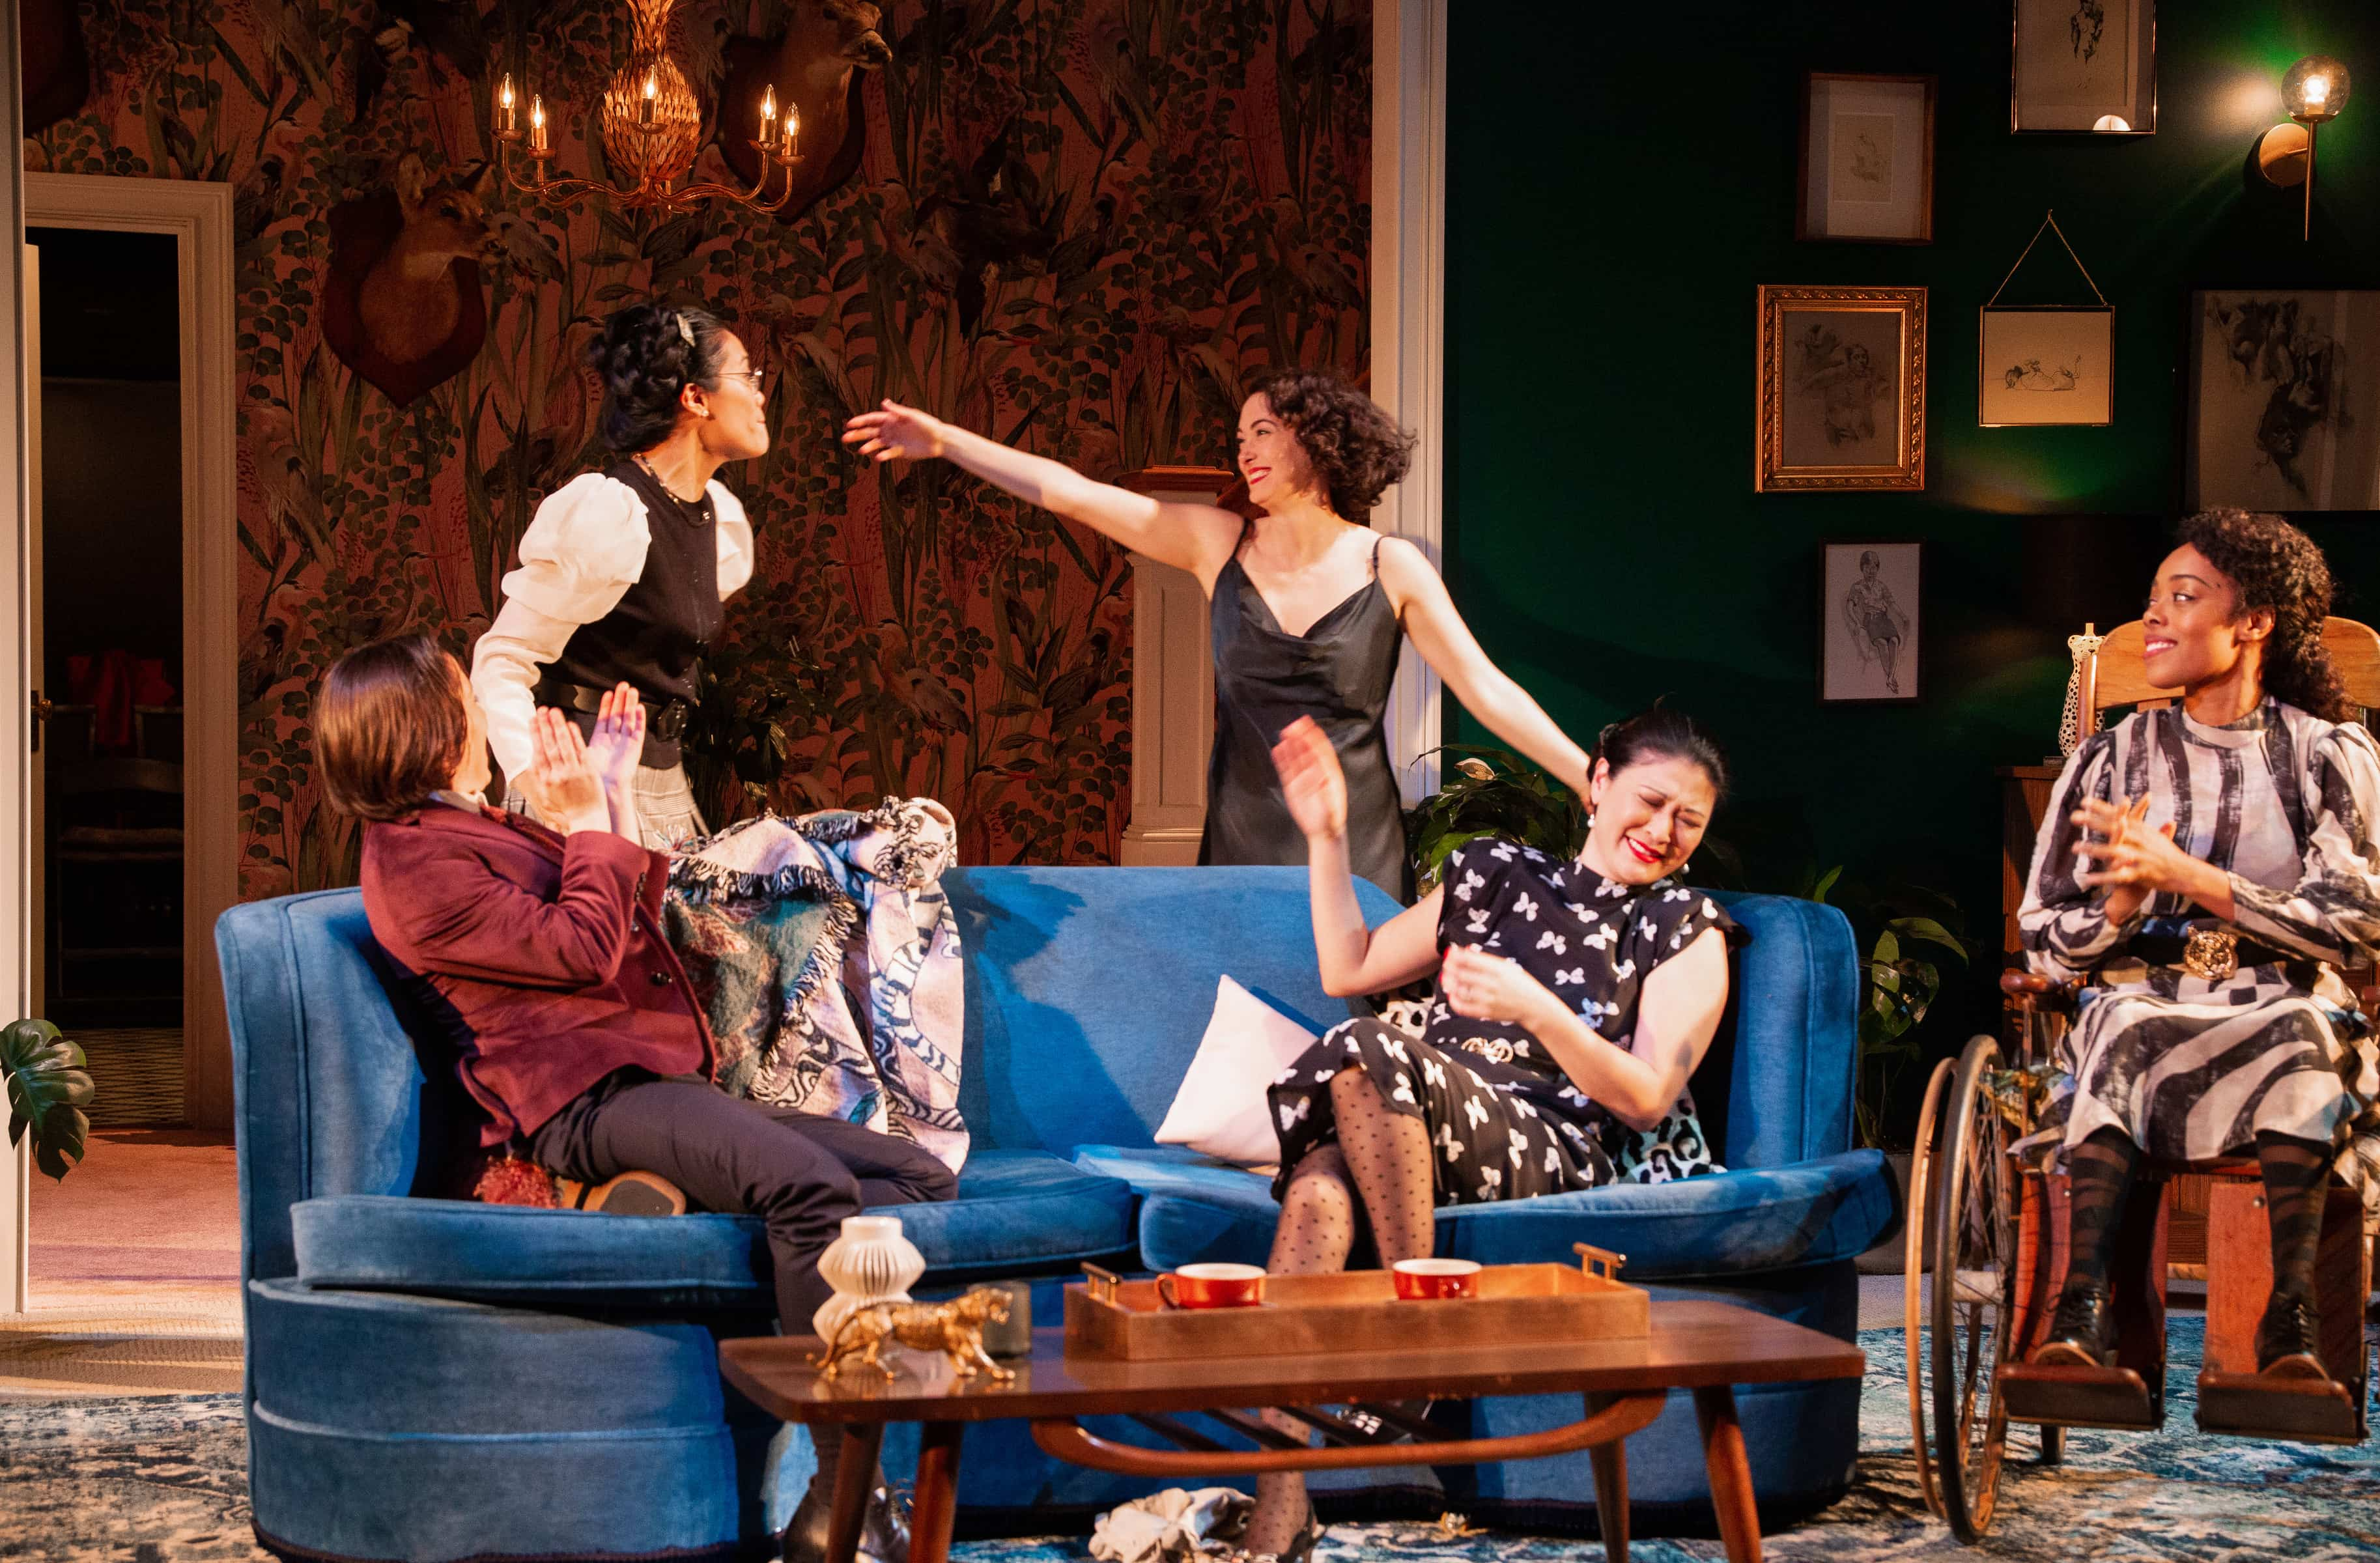 Ronete Levenson (Sue), Lindsay Rico (Paula), Helen Cespedes (Emma), Jennifer Lim (Cindy), and Brittany Bradford (Julia) in Fefu and Her Friends. Photo: Henry Grossman